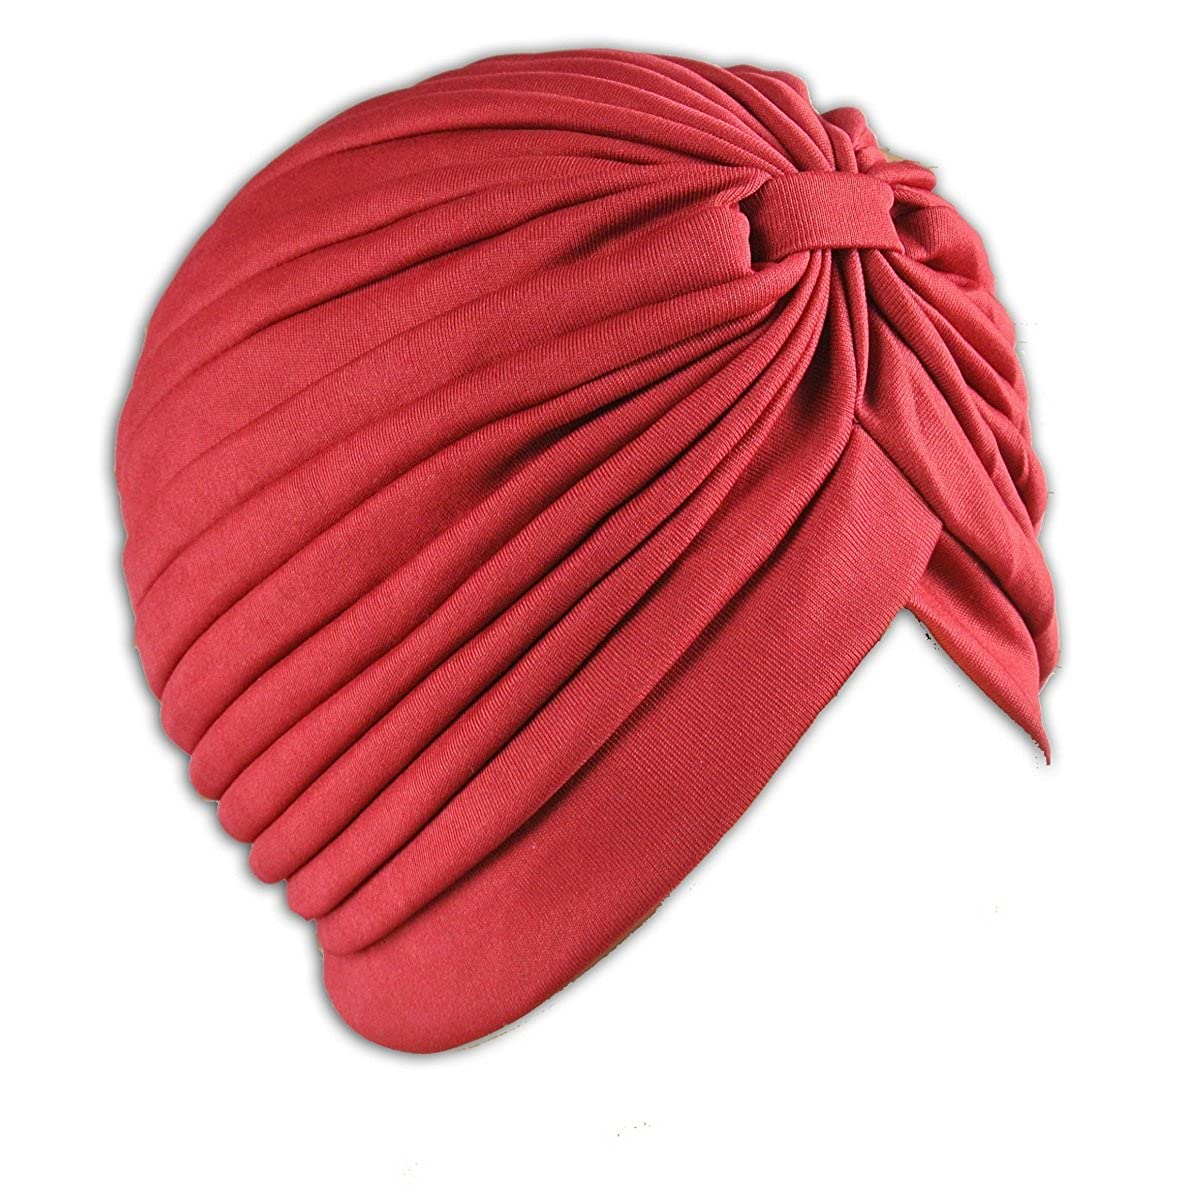 1 High Quality Stretchable Turban Hat